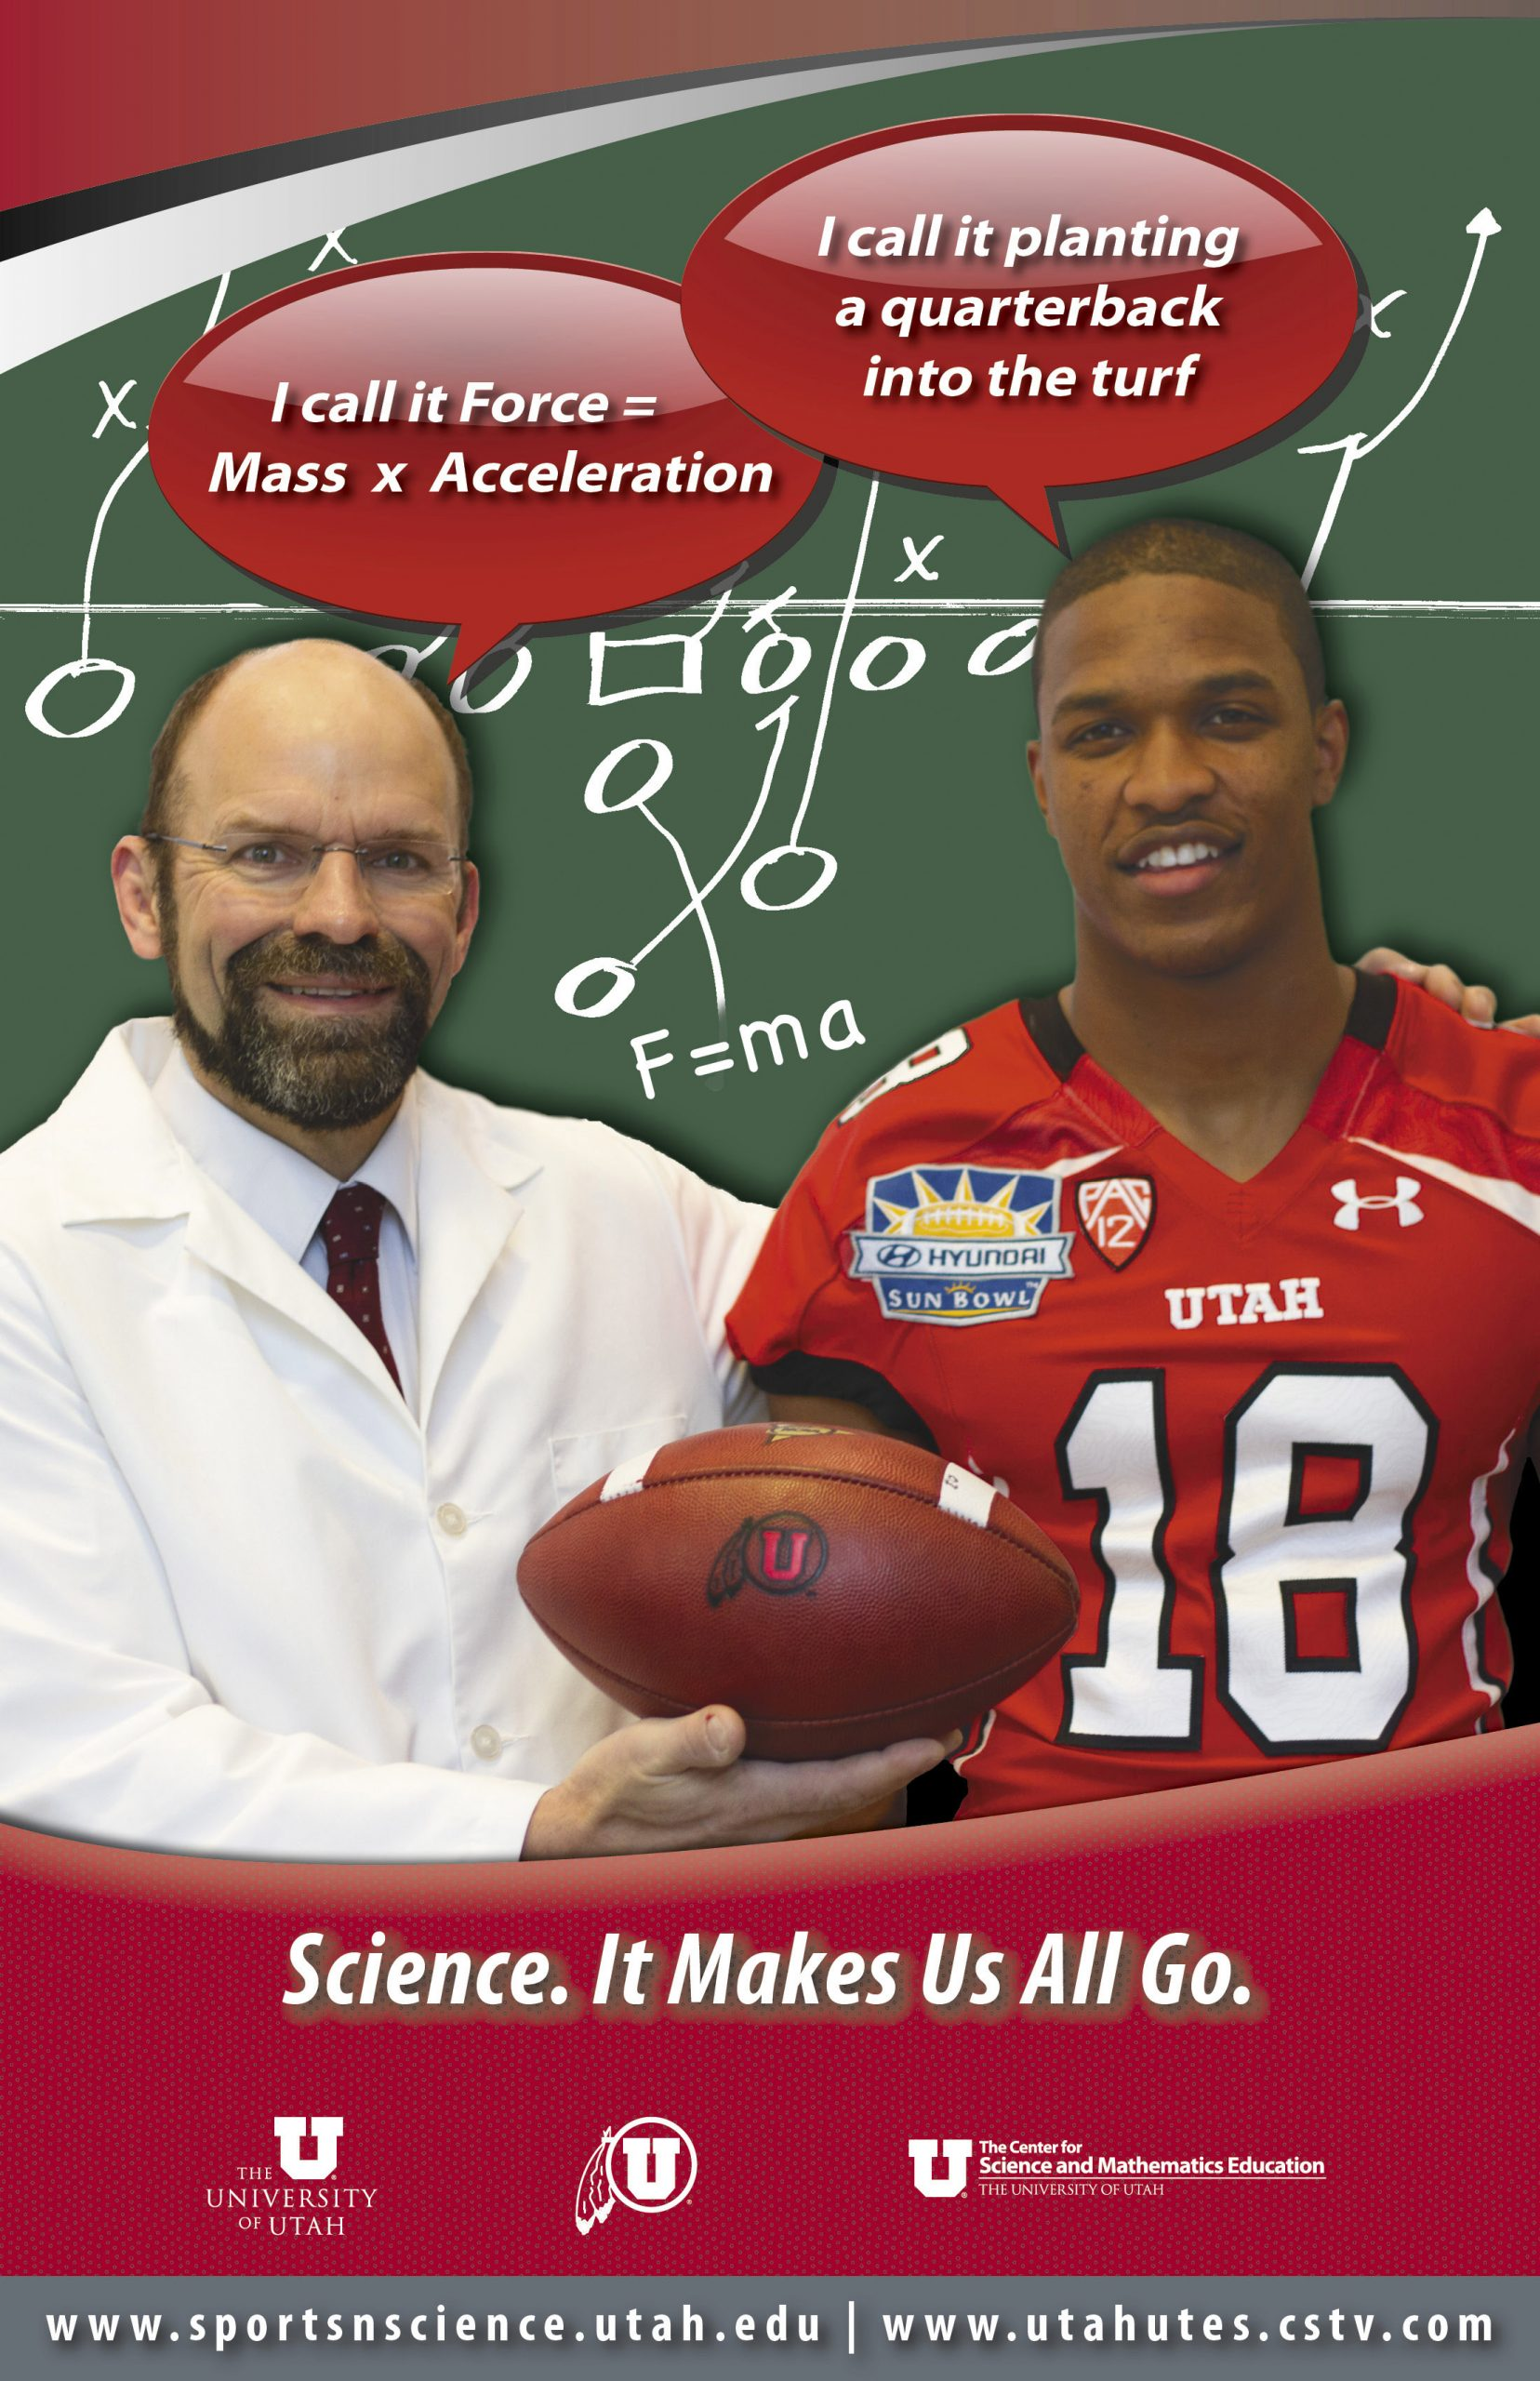 David Kieda, professor and chair of physics and astronomy at the University of Utah, joins Utes football defensive back Eric Rowe in this poster that is part of the university's new Sports 'n Science program aimed at bridging the divide between scientists and atletes.